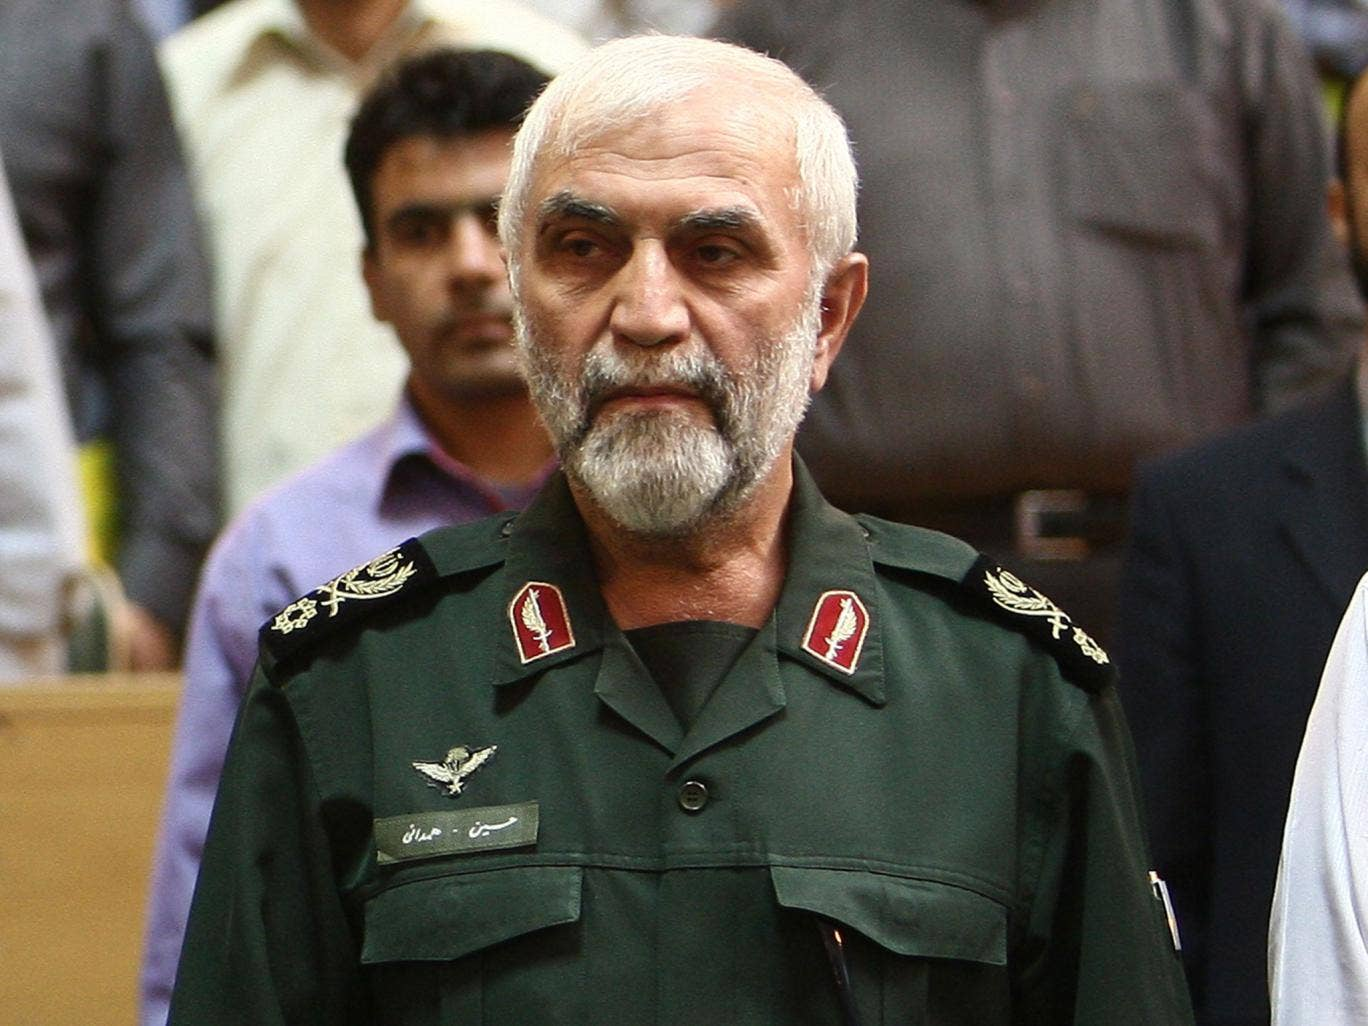 Iranian commander Brigadier General Hossein Hamedani killed by Isis while